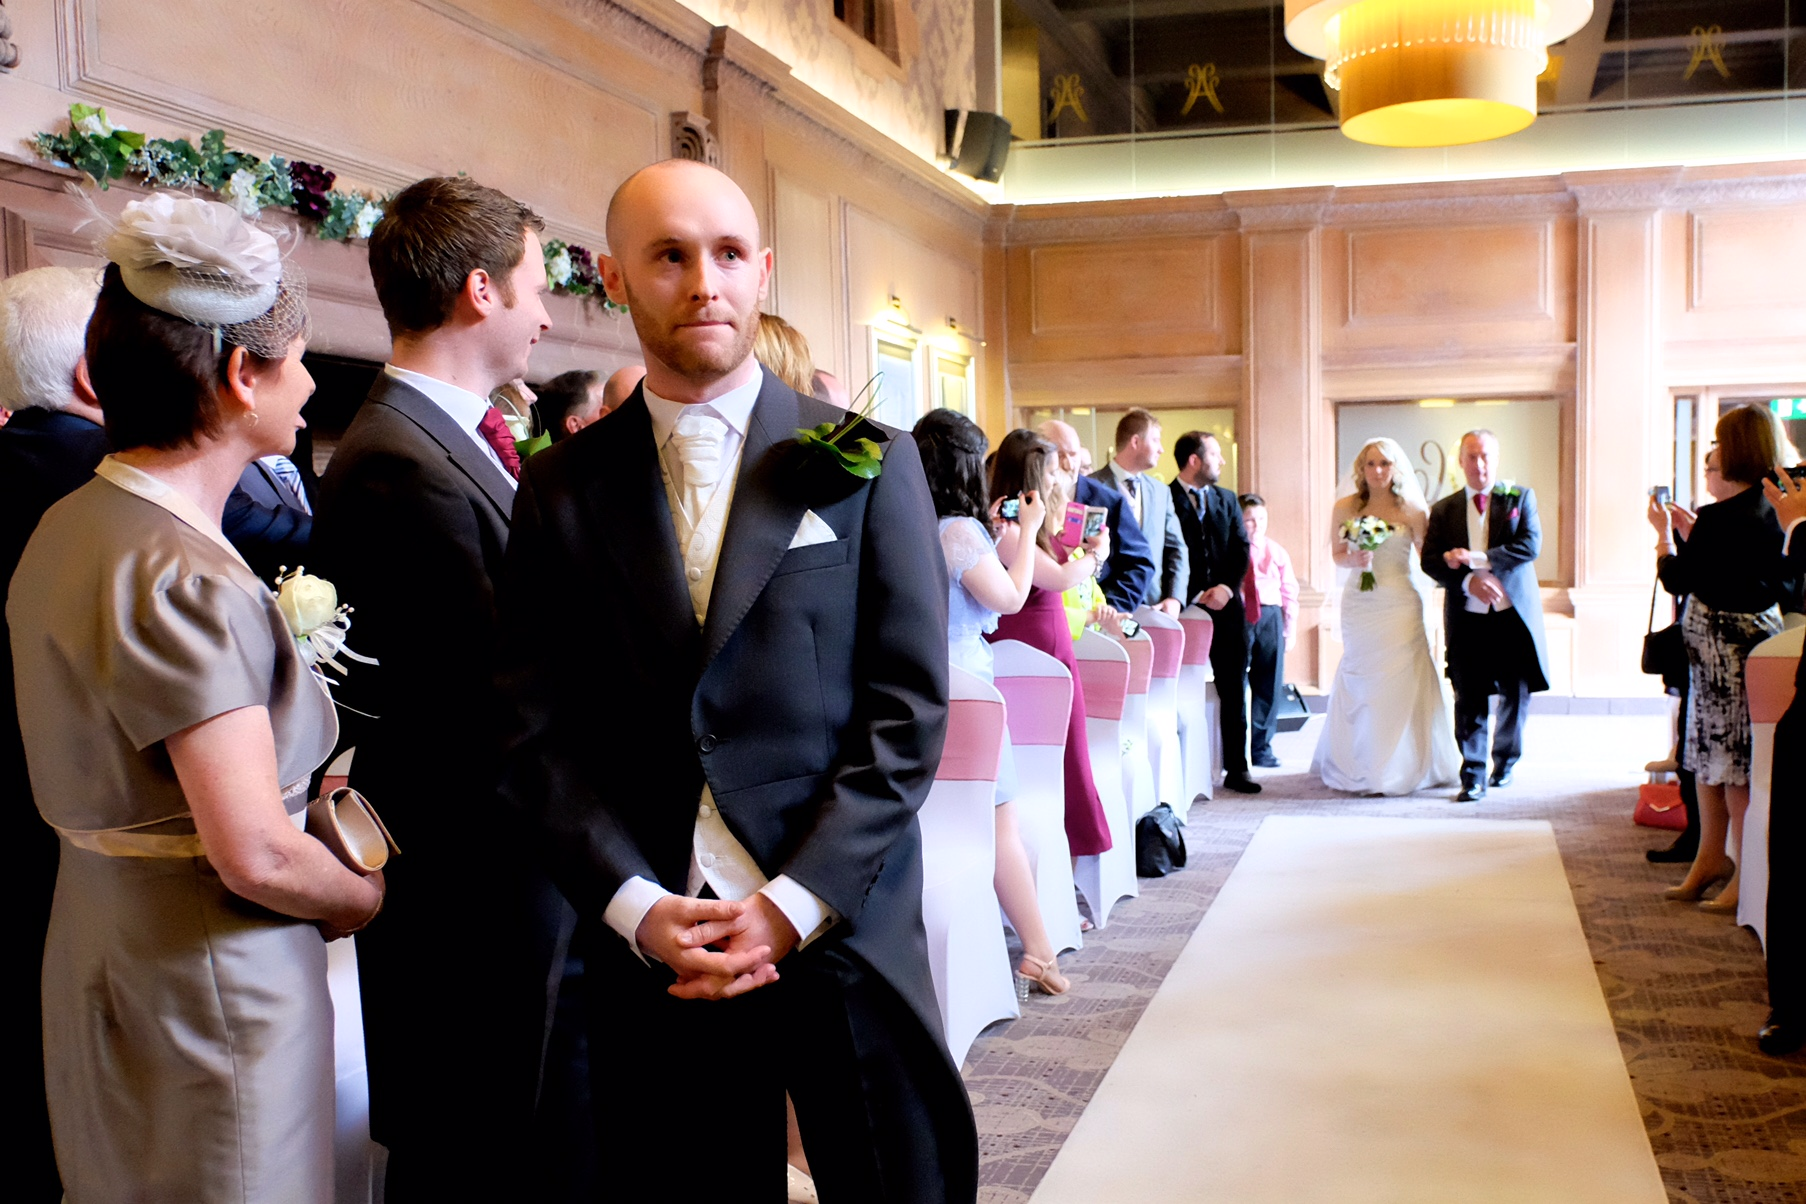 Groom waiting for bride to walk up the isle